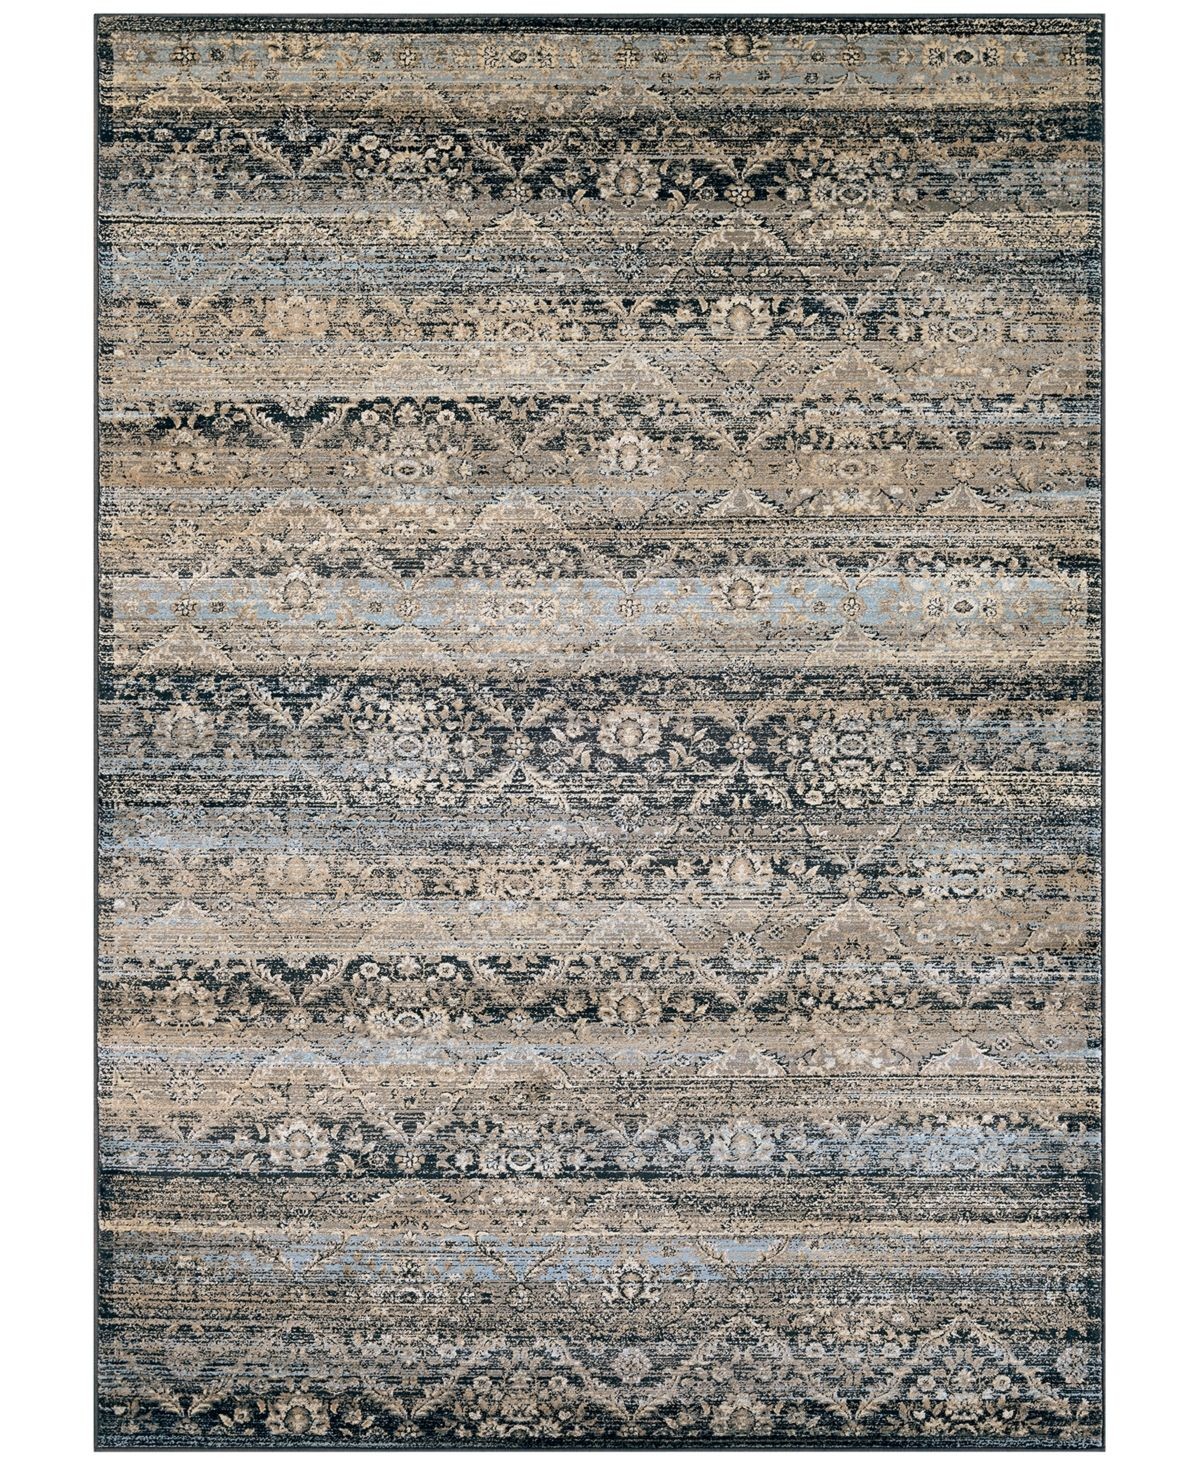 Couristan Closeout Haraz Har466 Blue 7 10 X 11 2 Area Rug Reviews Rugs Macy S Rug Runner Rugs Area Rugs